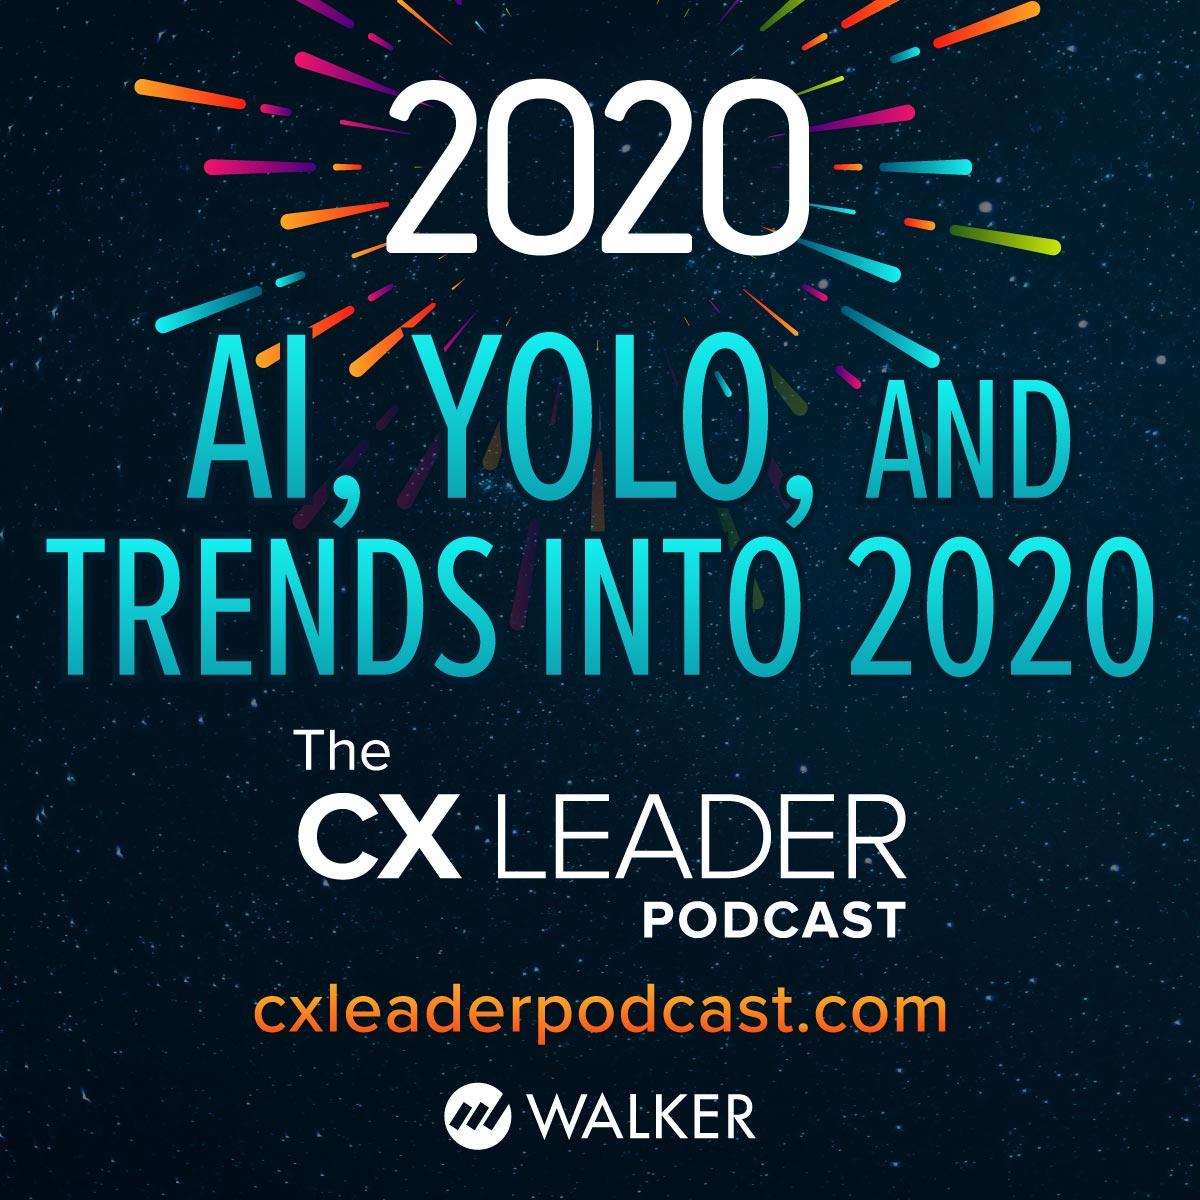 AI, YOLO, and Trends into 2020